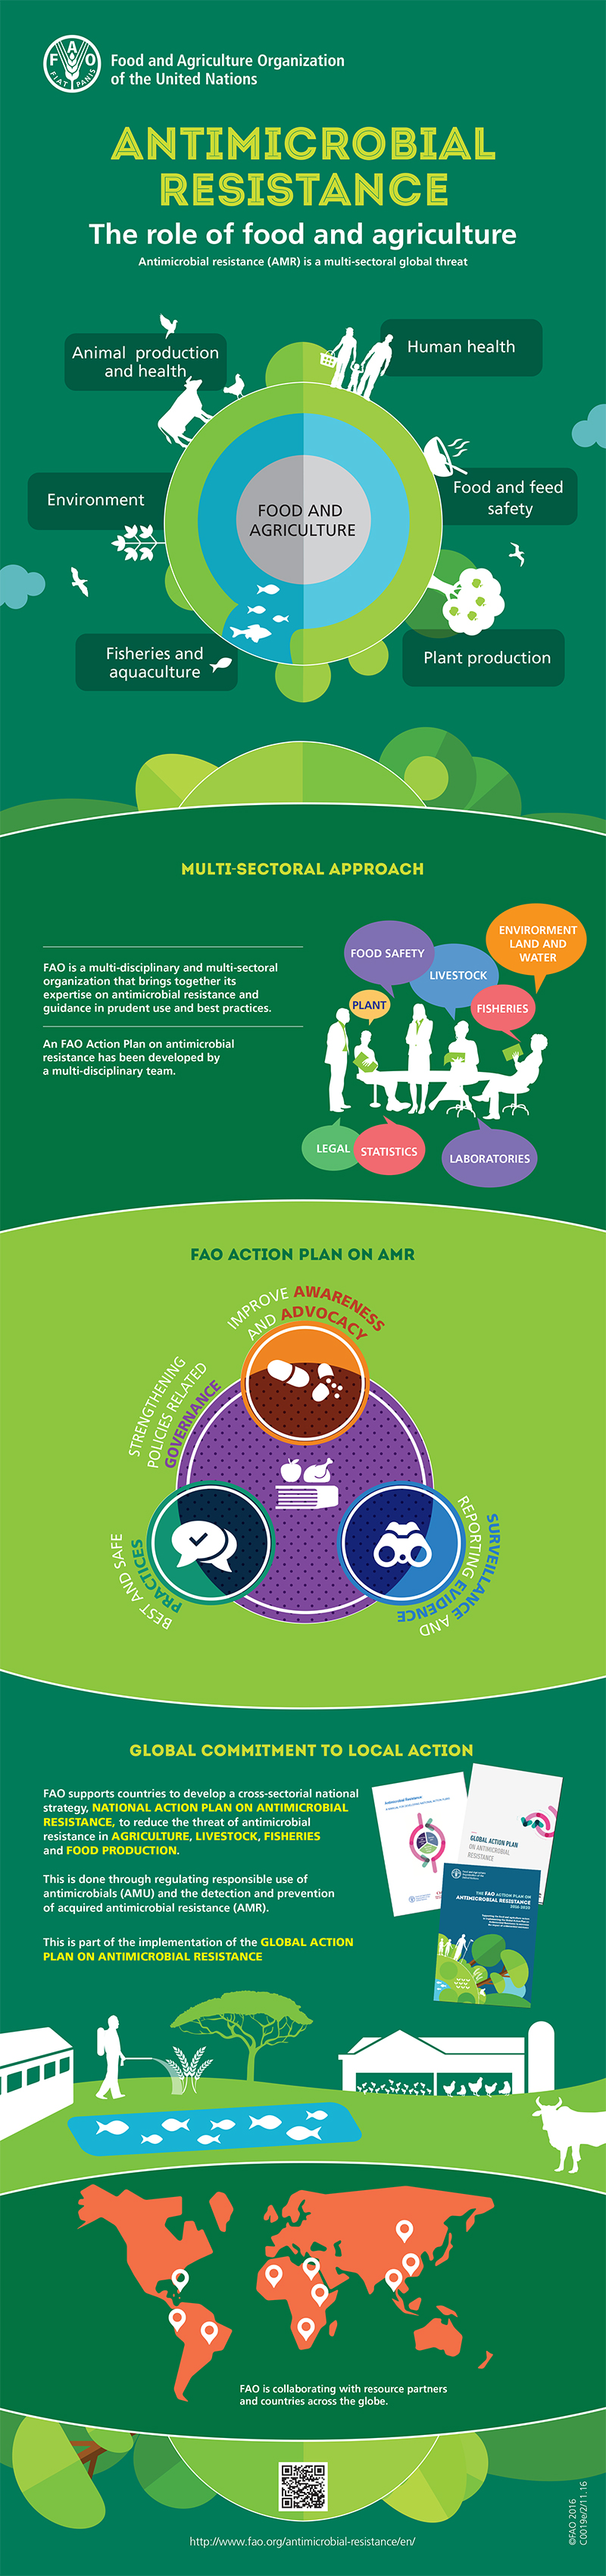 Antimicrobial Resistance The Role Of Food And Agriculture Antimicrobial Resistance Agriculture Antimicrobial